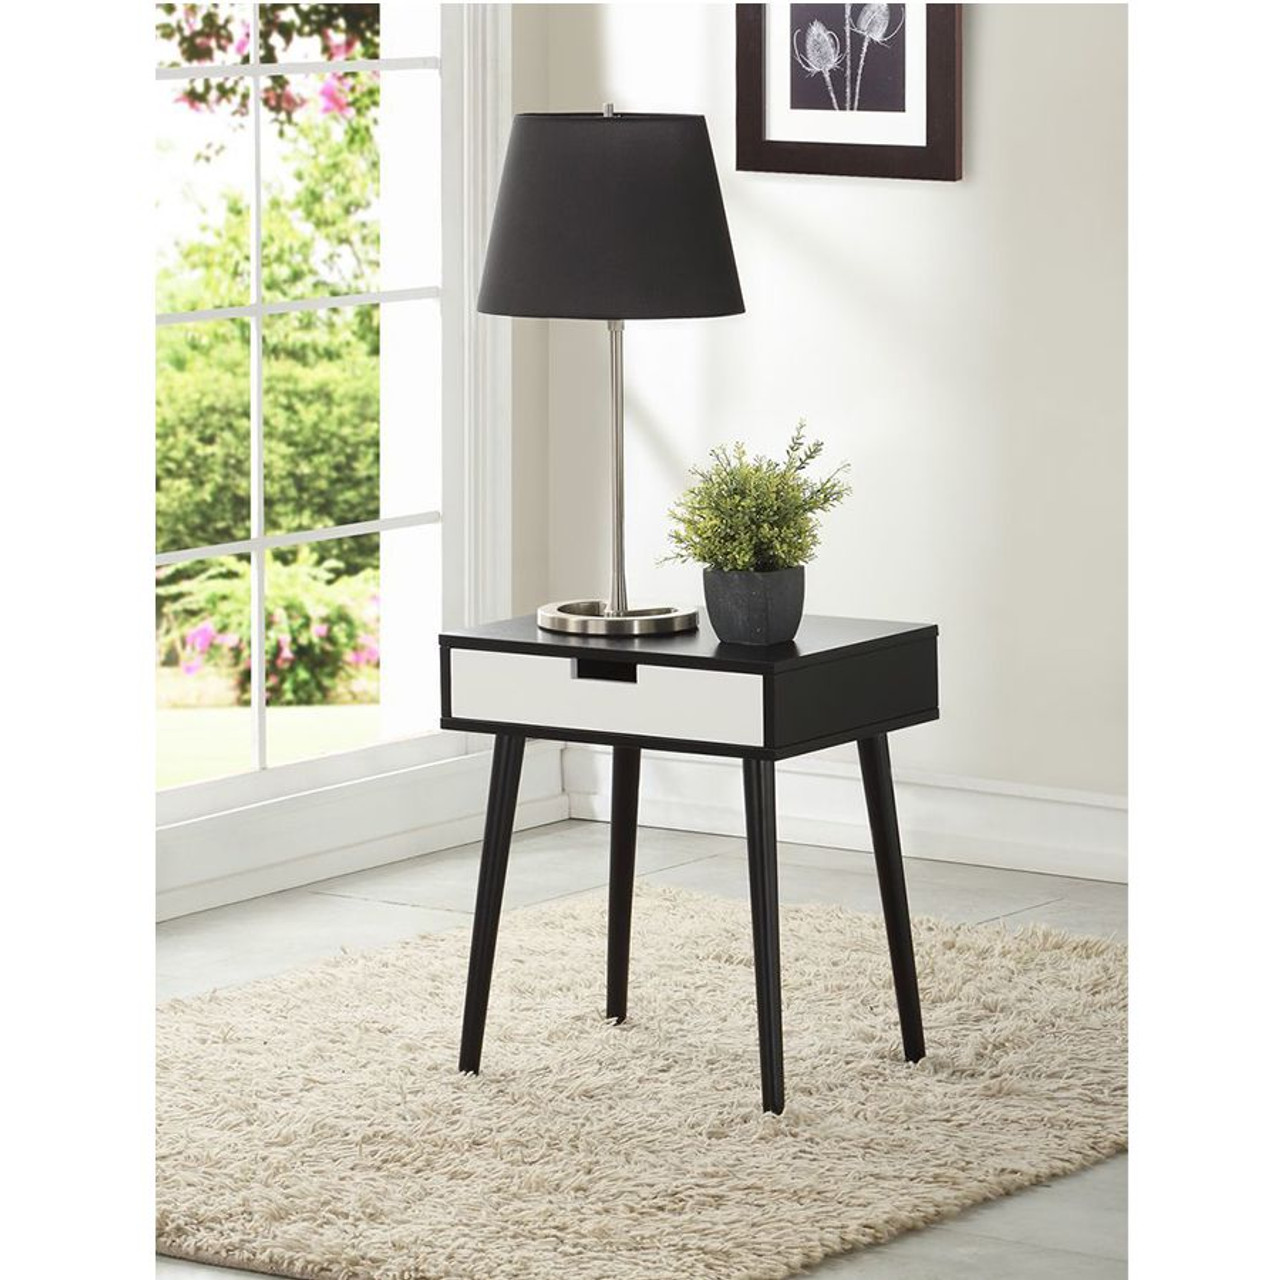 Black Color Hardwood End Table, Night Stand with Drawer